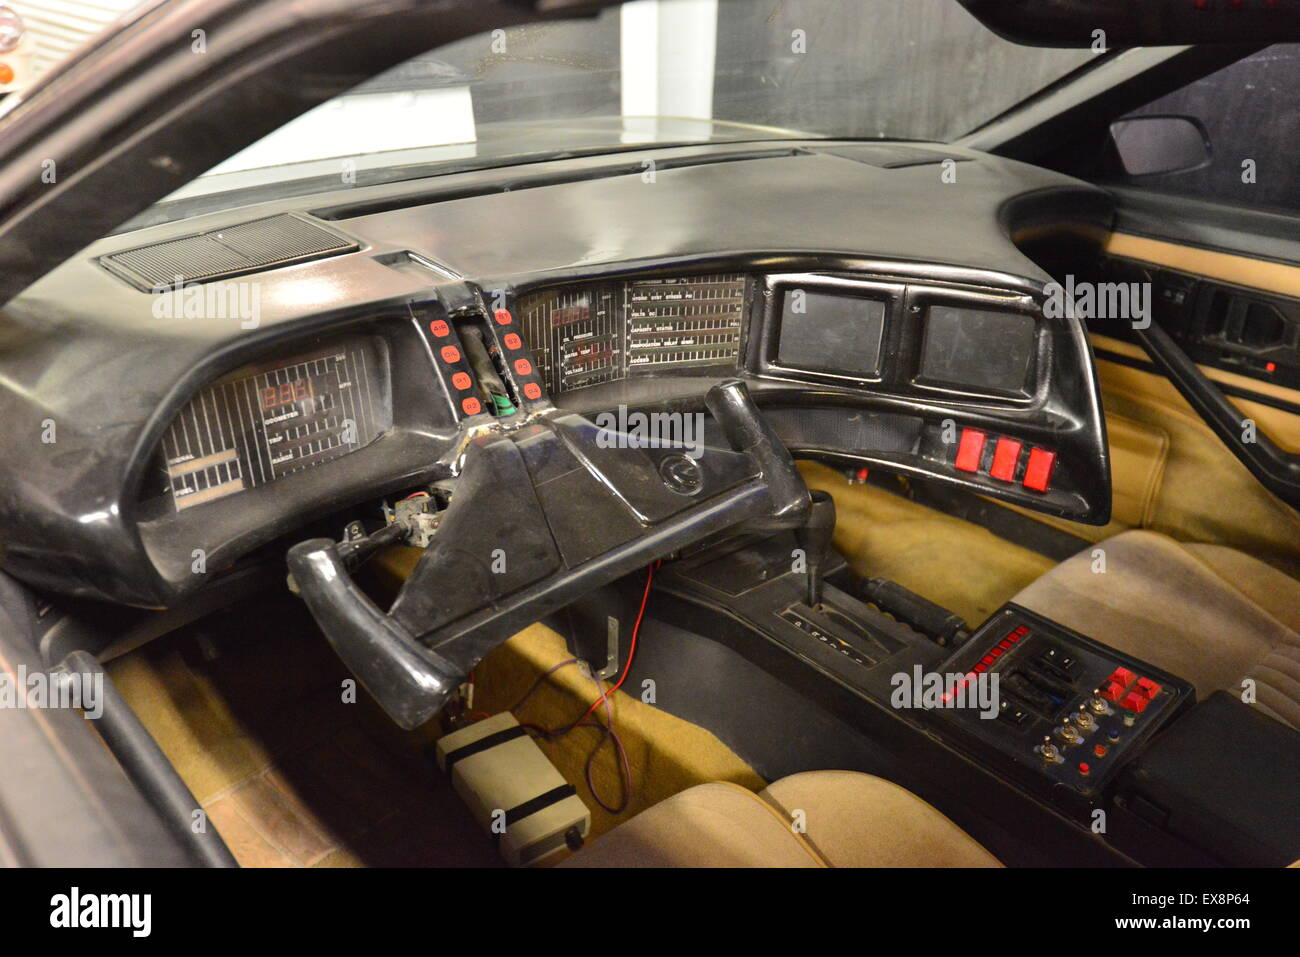 Knight Rider Trans Am Interior.   Stock Image